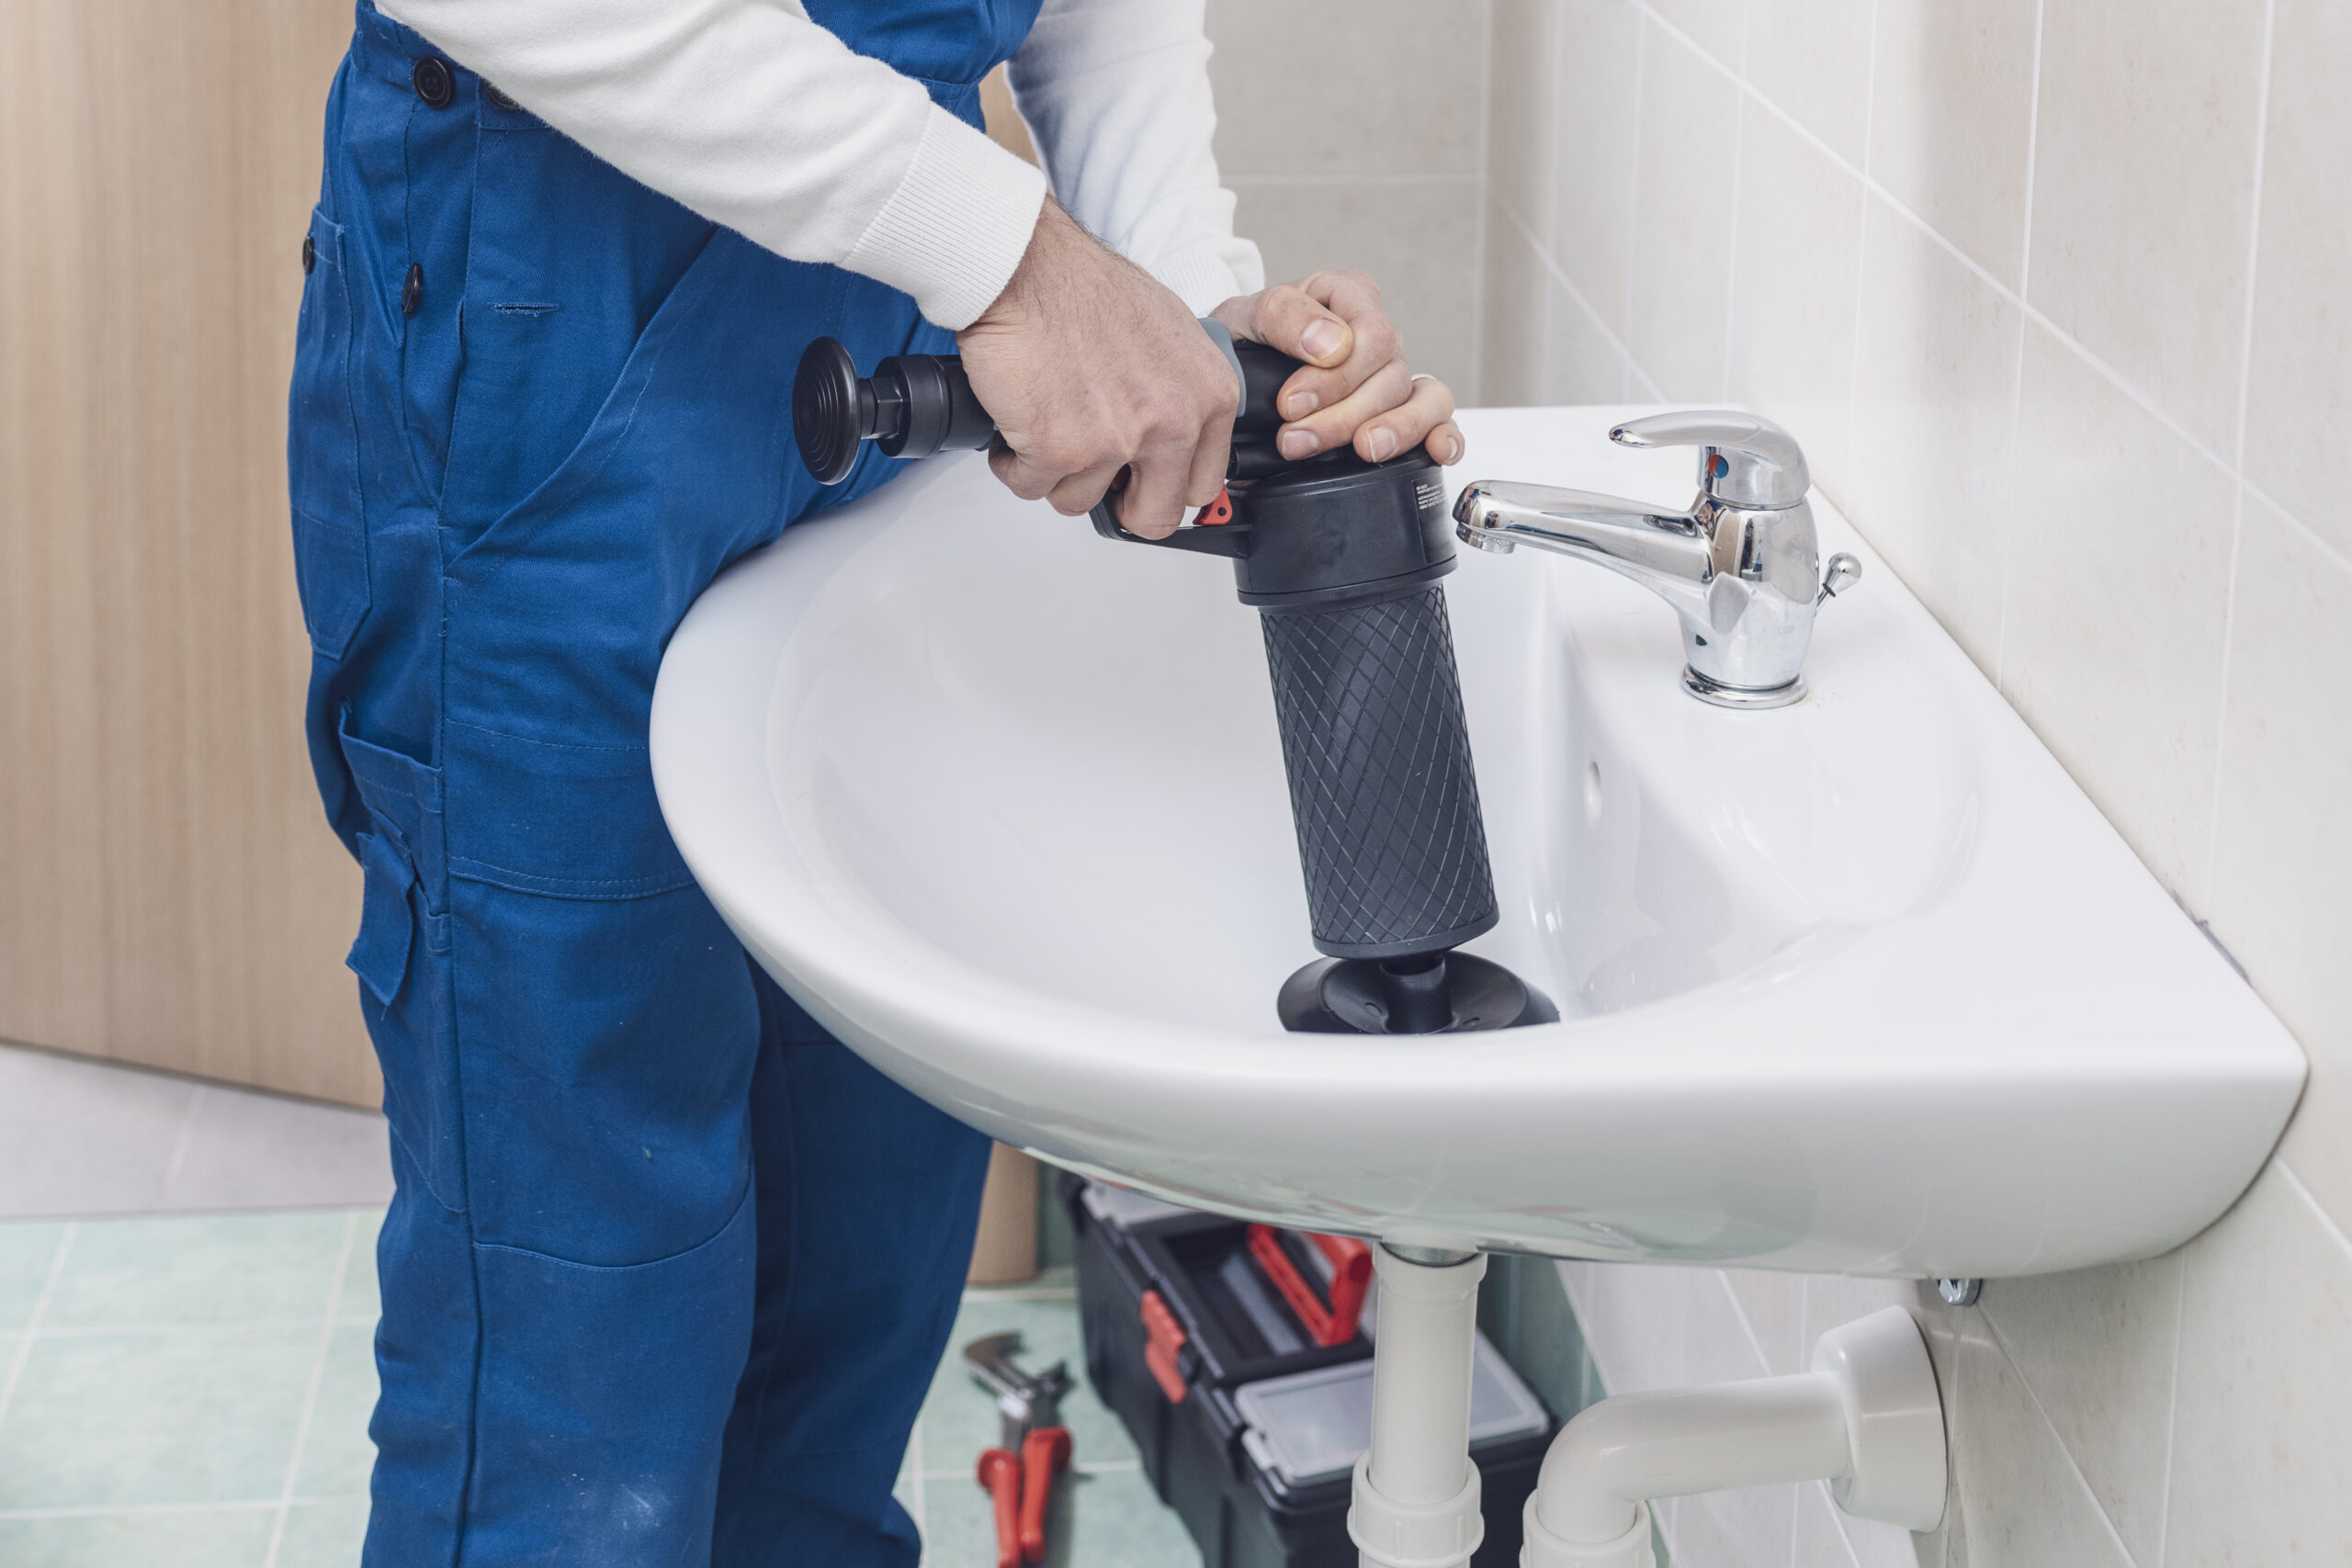 Best Cordless Drain Auger for Unclogging Pipes 2021